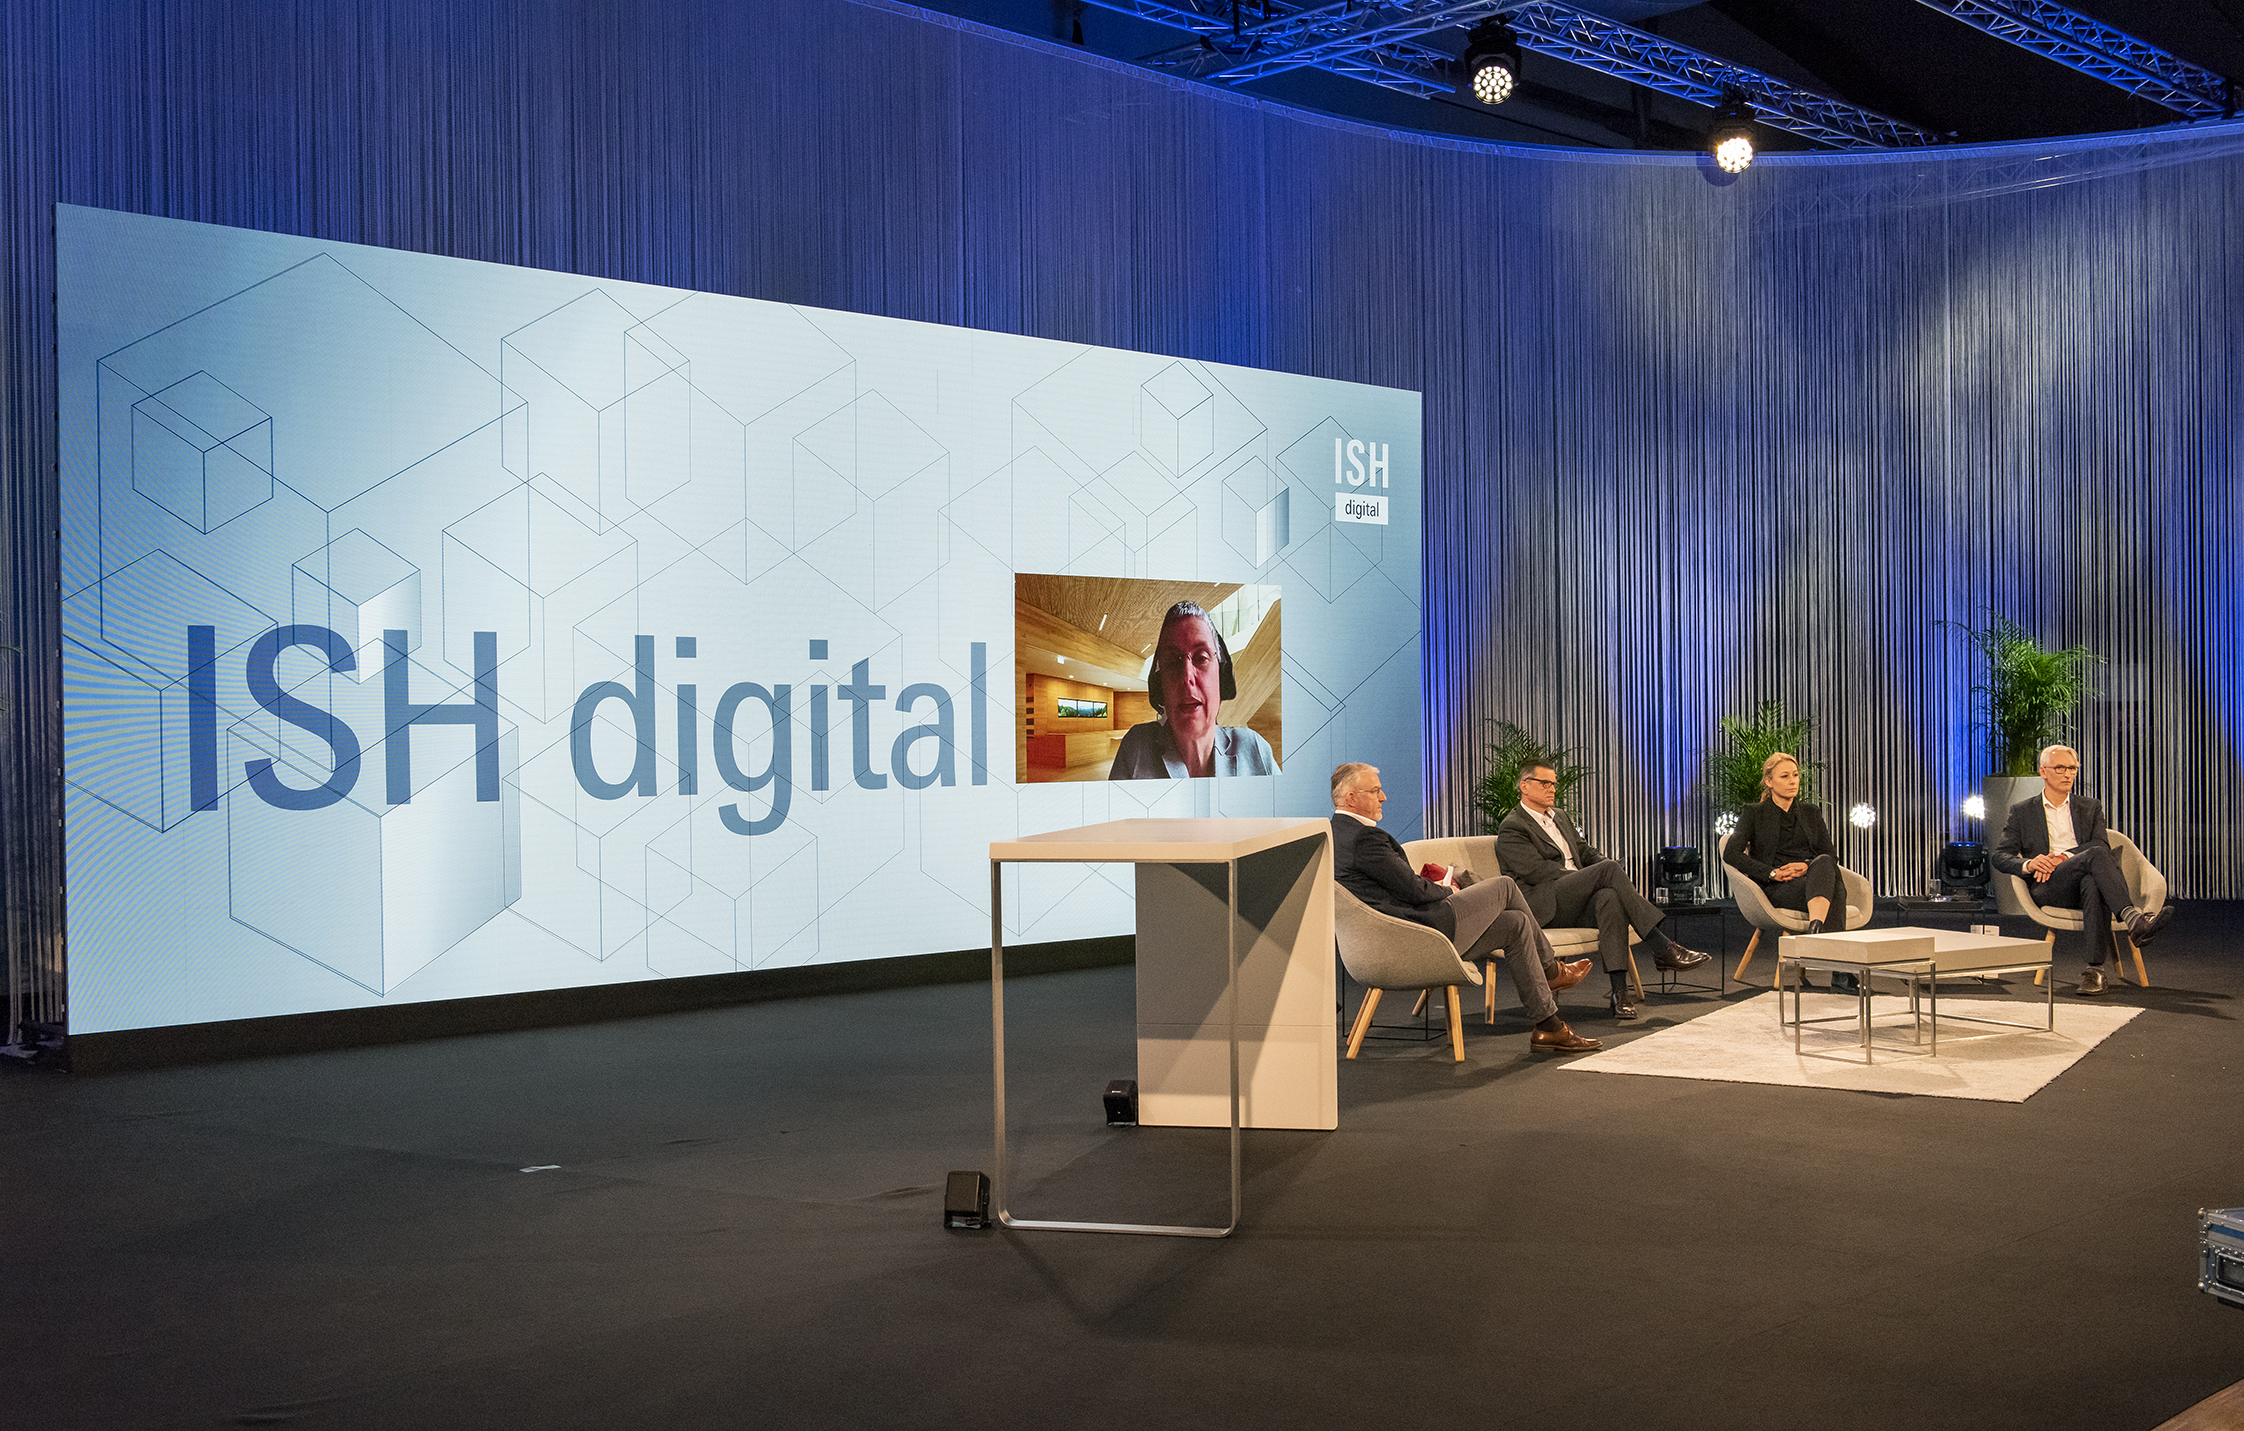 ISH digital 2021 / The House of Earth (Source: Messe Frankfurt Exhibition GmbH / Petra Welzel)